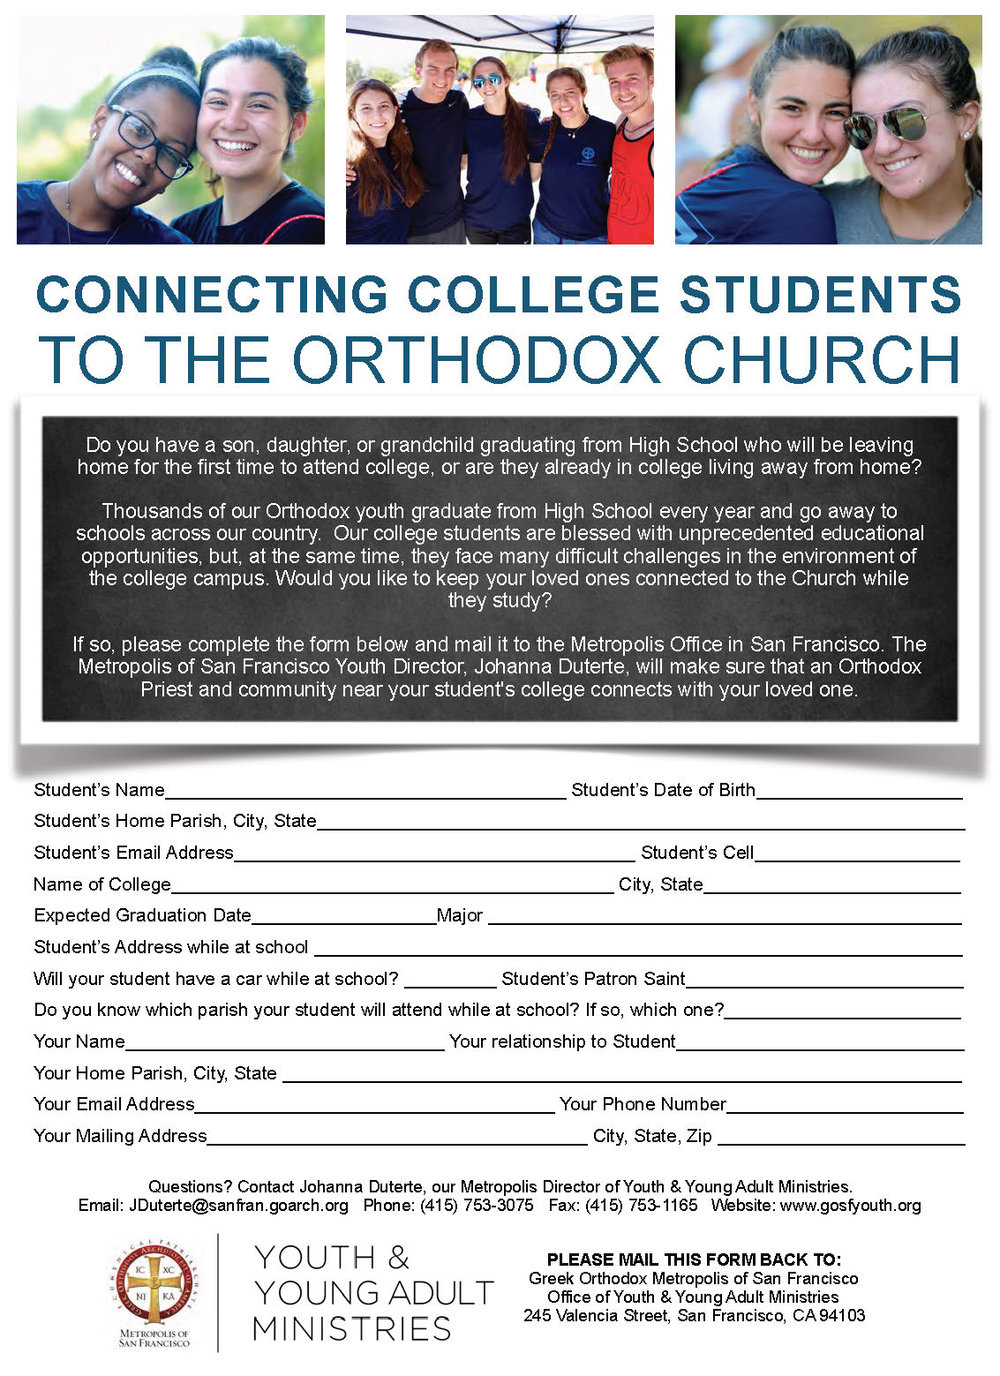 Connecting College Students to the Orthodox Church.jpg